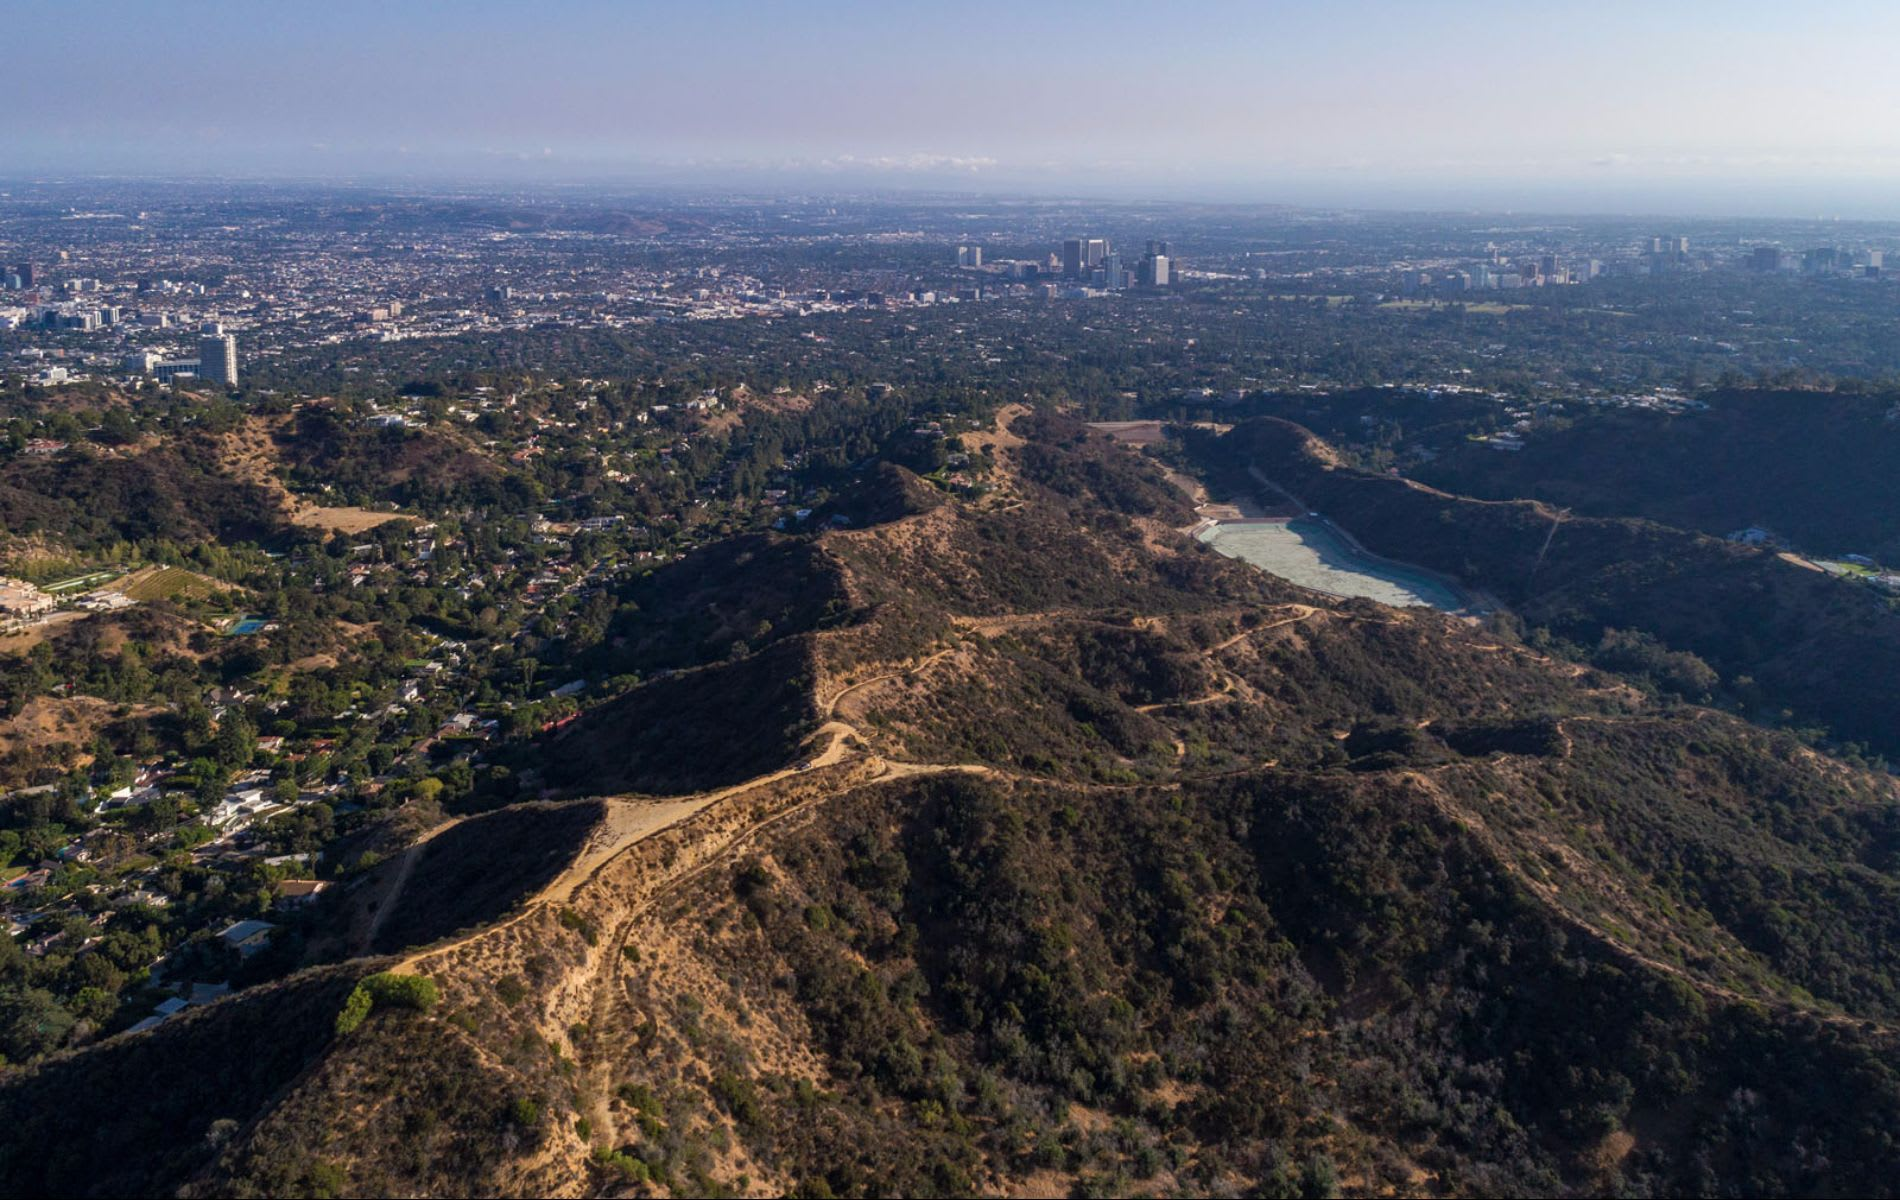 Land / Lot for Sale at 9560 Cedarbrook Dr 9560 Cedarbrook Dr Beverly Hills, California,90210 United States